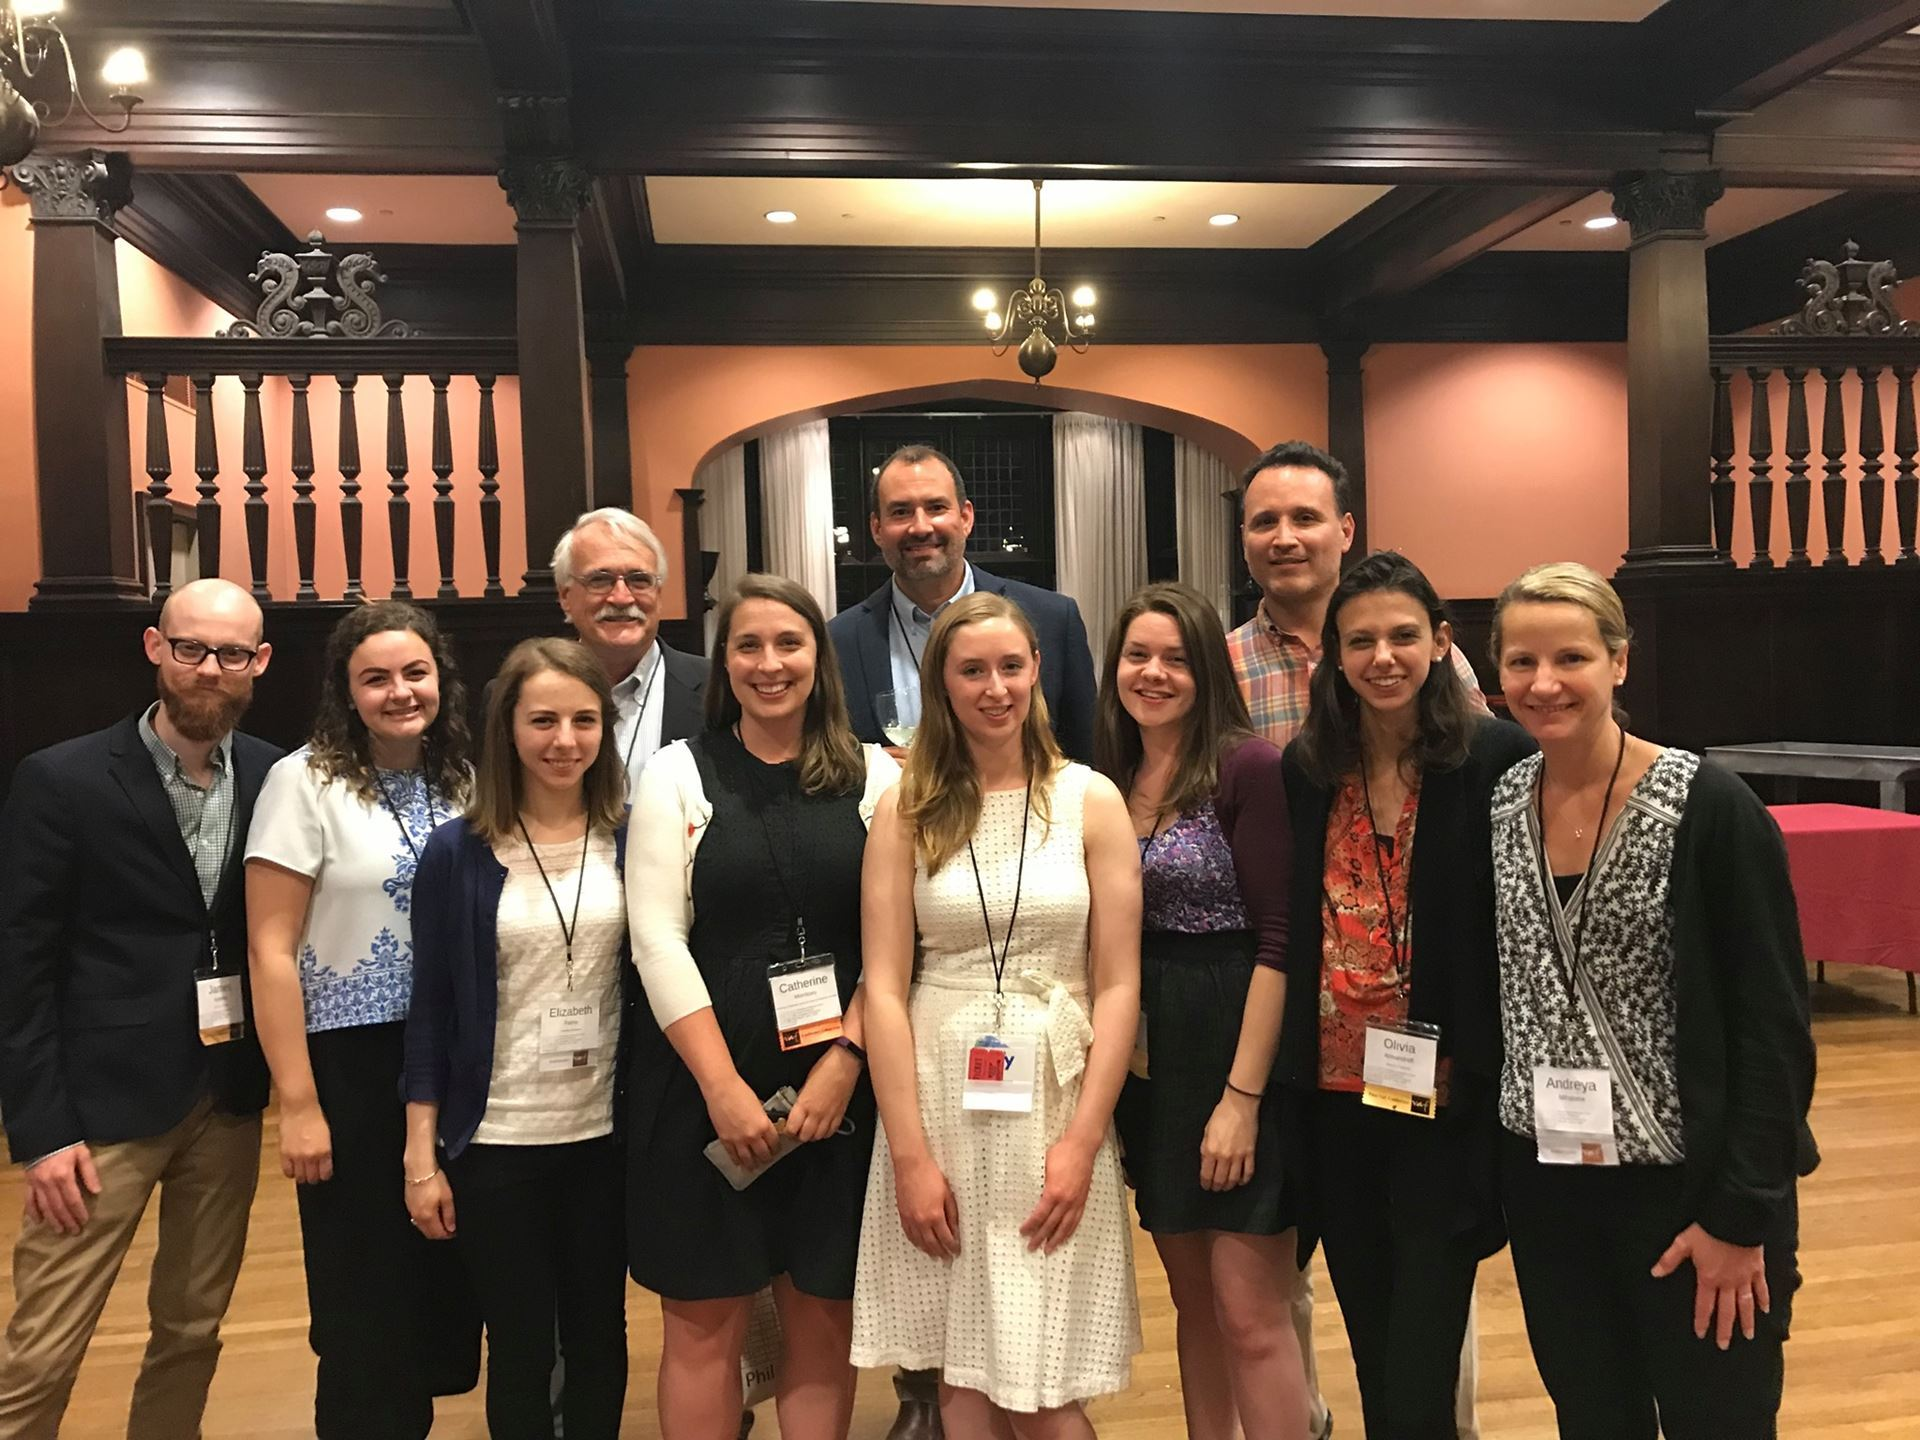 University of Delaware Ambassadors at UPenn. Front Row James Kelleher (Winterthur, Class of 2020), Bethany McGlyn (Winterthur, Class of 2020), Elizabeth Palms (Winterthur, Class of 2020), Catherine Morrissey (CHAD Assistant Director Faculty Sponsor), Mary Fesak (UD-American Civilization PhD), Kimberley Showell (UD-Historic Preservation Graduate Certificate Class of 2019), Olivia Armandroff (Winterthur, Class of 2020), and Andreya Mihaloew (UD-Historic Preservation Graduate Certificate Class of 2019). Back Row Ritchie Garrison (Director of Winterthur Program), Michael J. Emmons, Jr. (CHAD Faculty Sponsor), and Jamie McGee (UD-Historic Preservation Graduate Certificate Class of 2019)